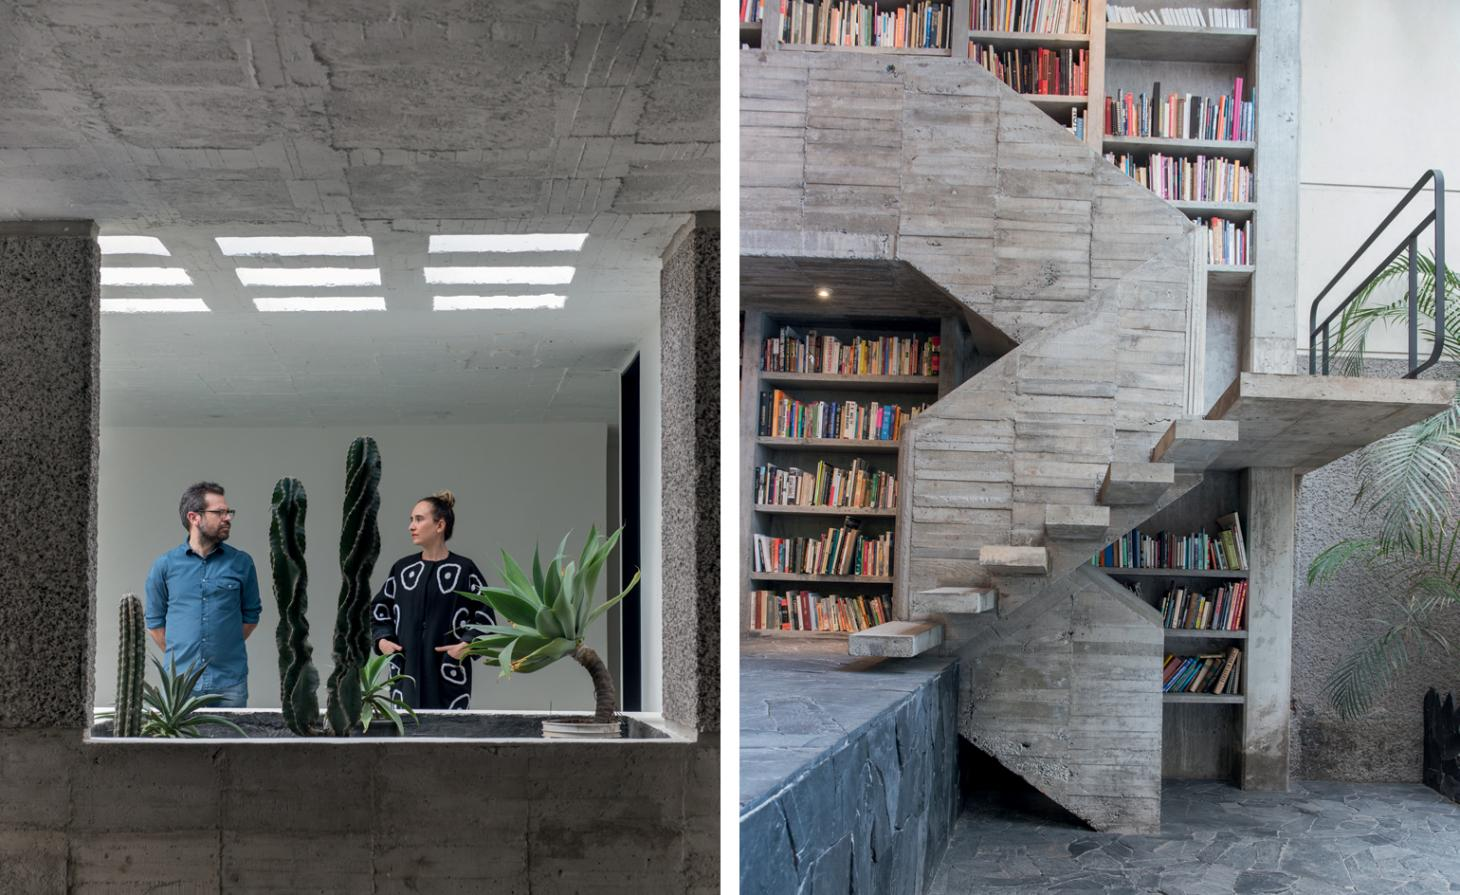 Brutal beauty: Mexico's leading creative couple cement their passion for concrete